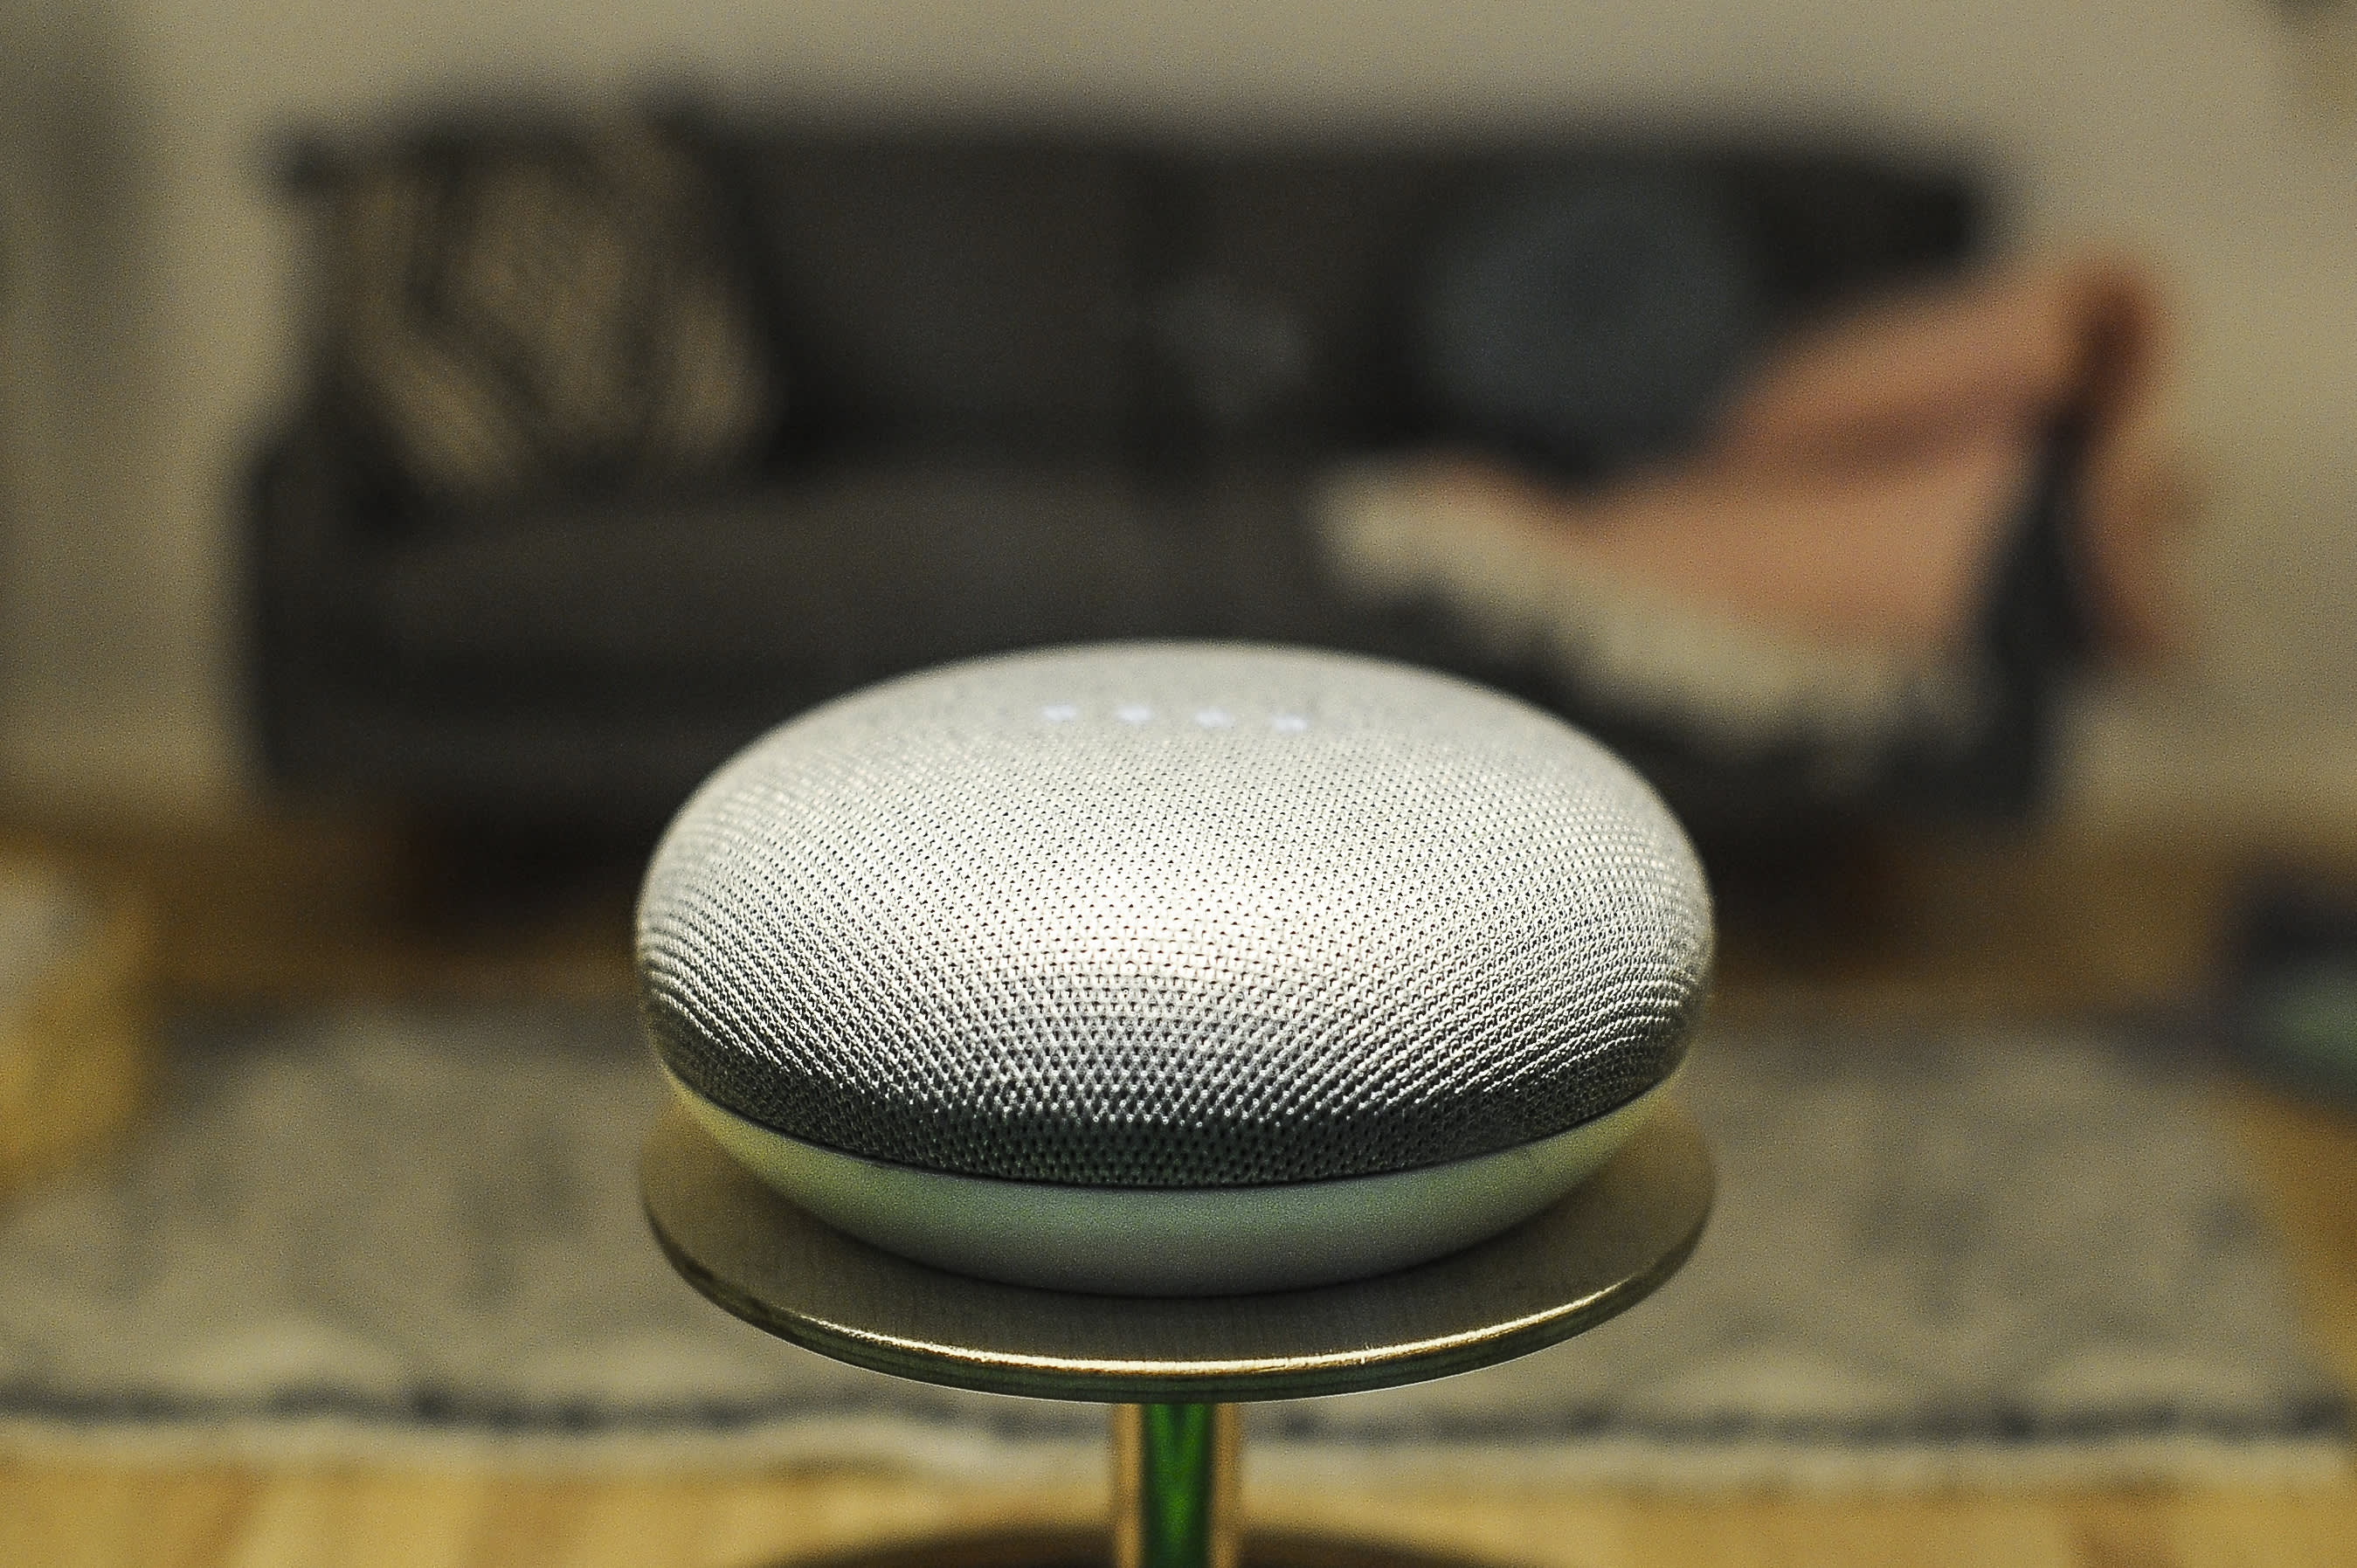 UK lender trials voice banking with Google Home